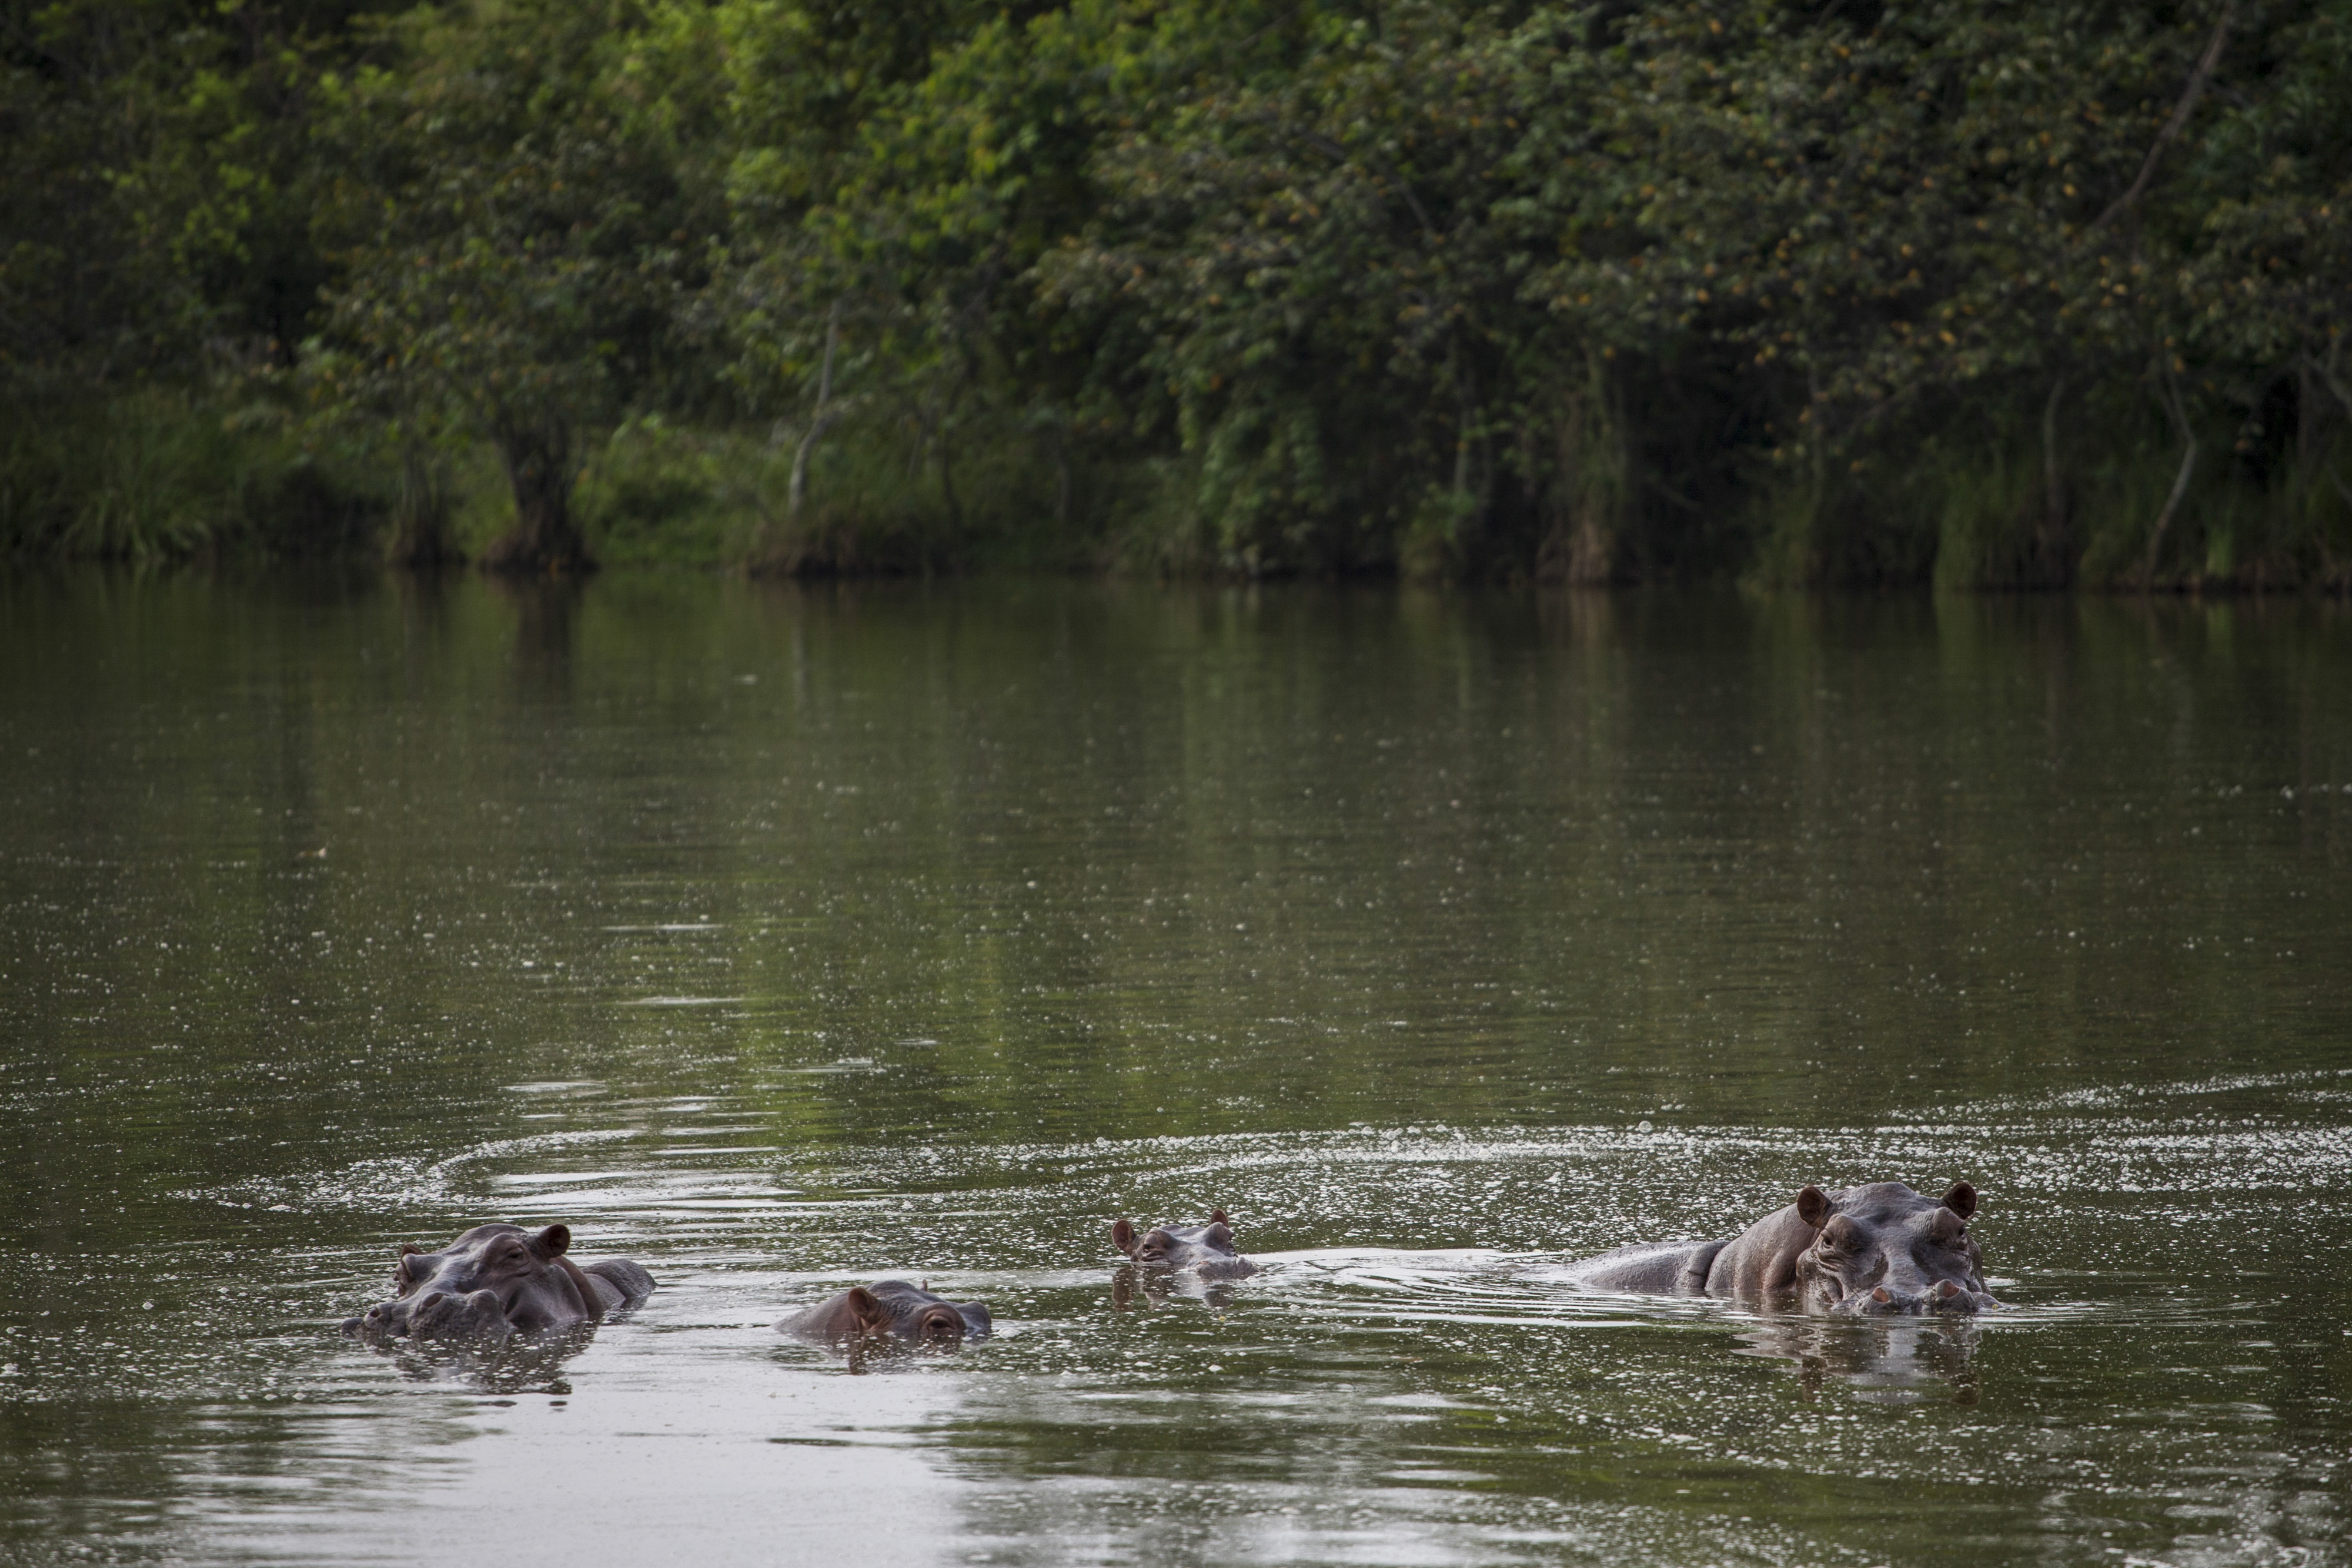 Hippos stay submerged in the lake at the Napoles Park in Puerto Triunfo, Colombia.